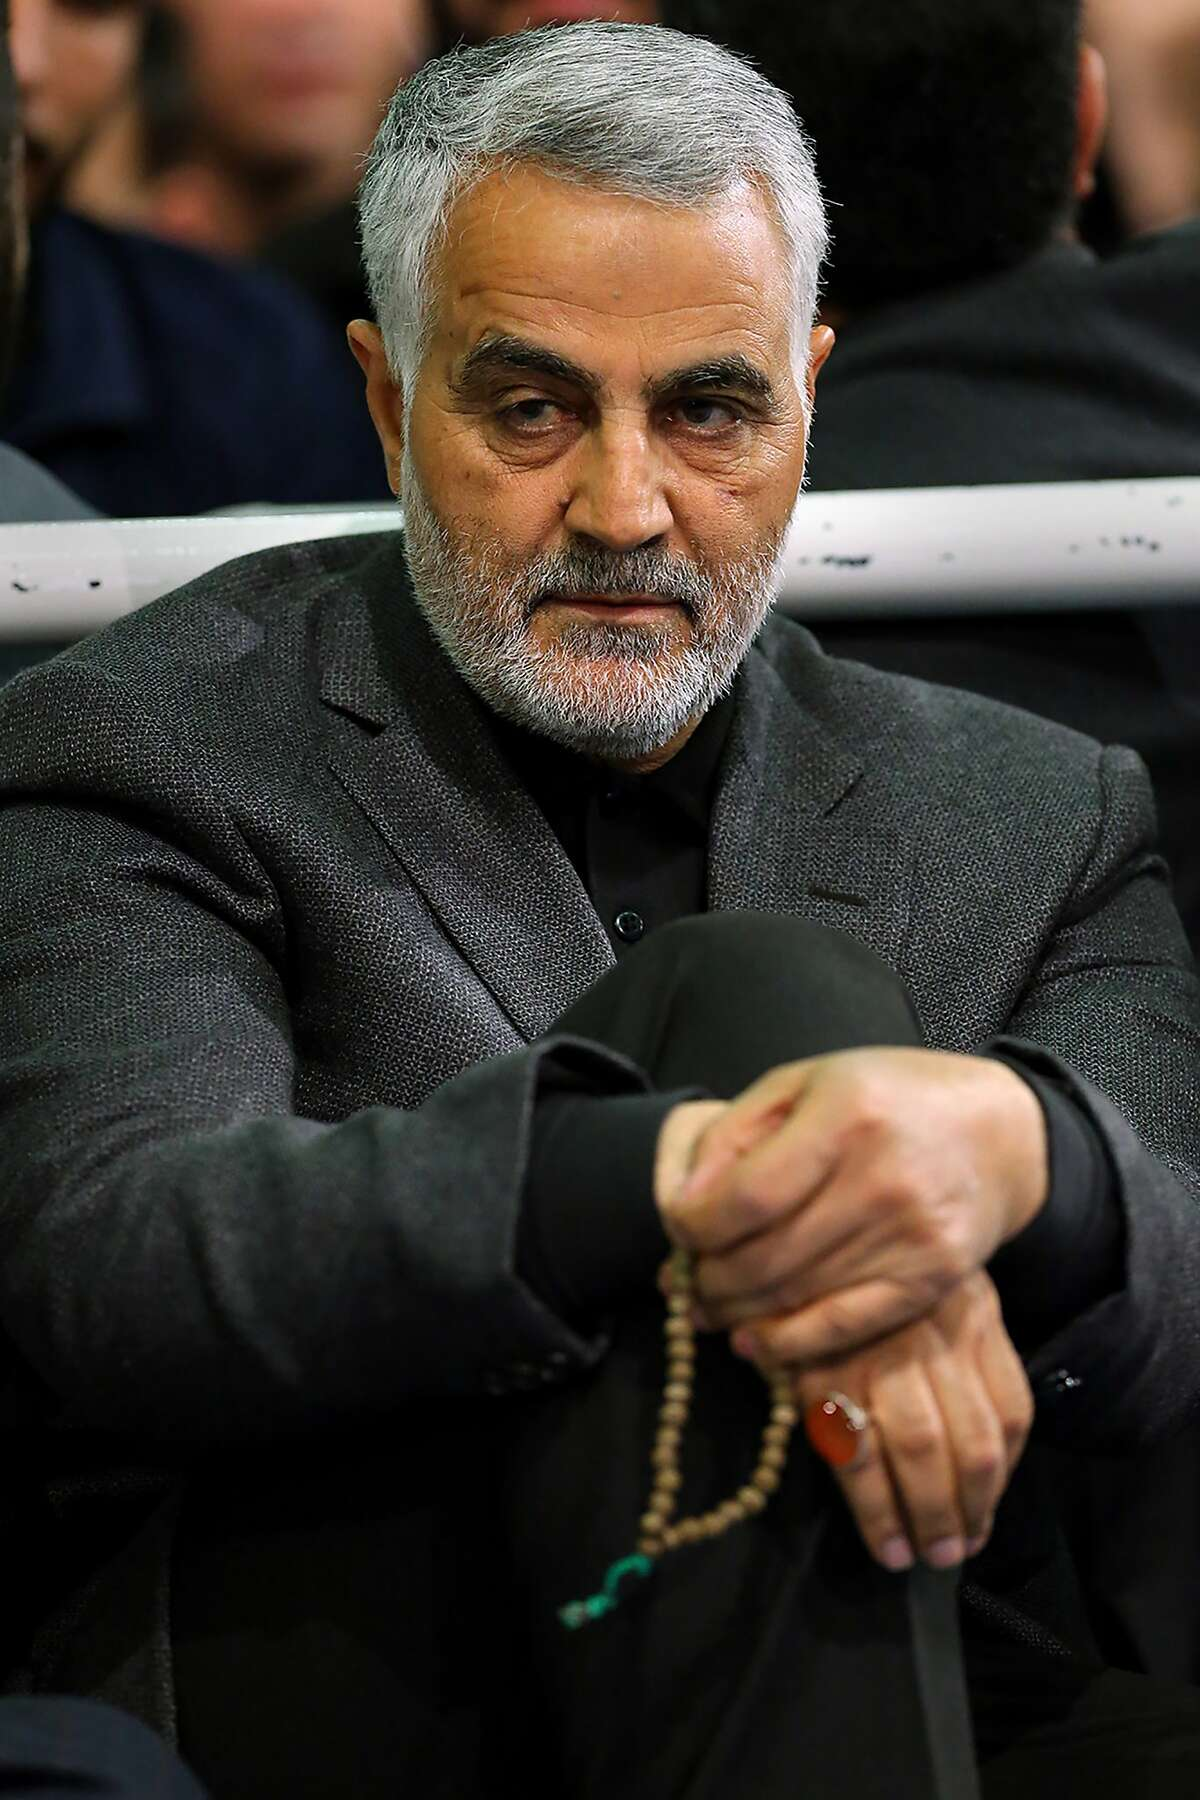 A photo provided by the Office of the Iranian Supreme Leader shows Maj. Gen. Qasem Soleimani in Tehran, Iran, in 2015.